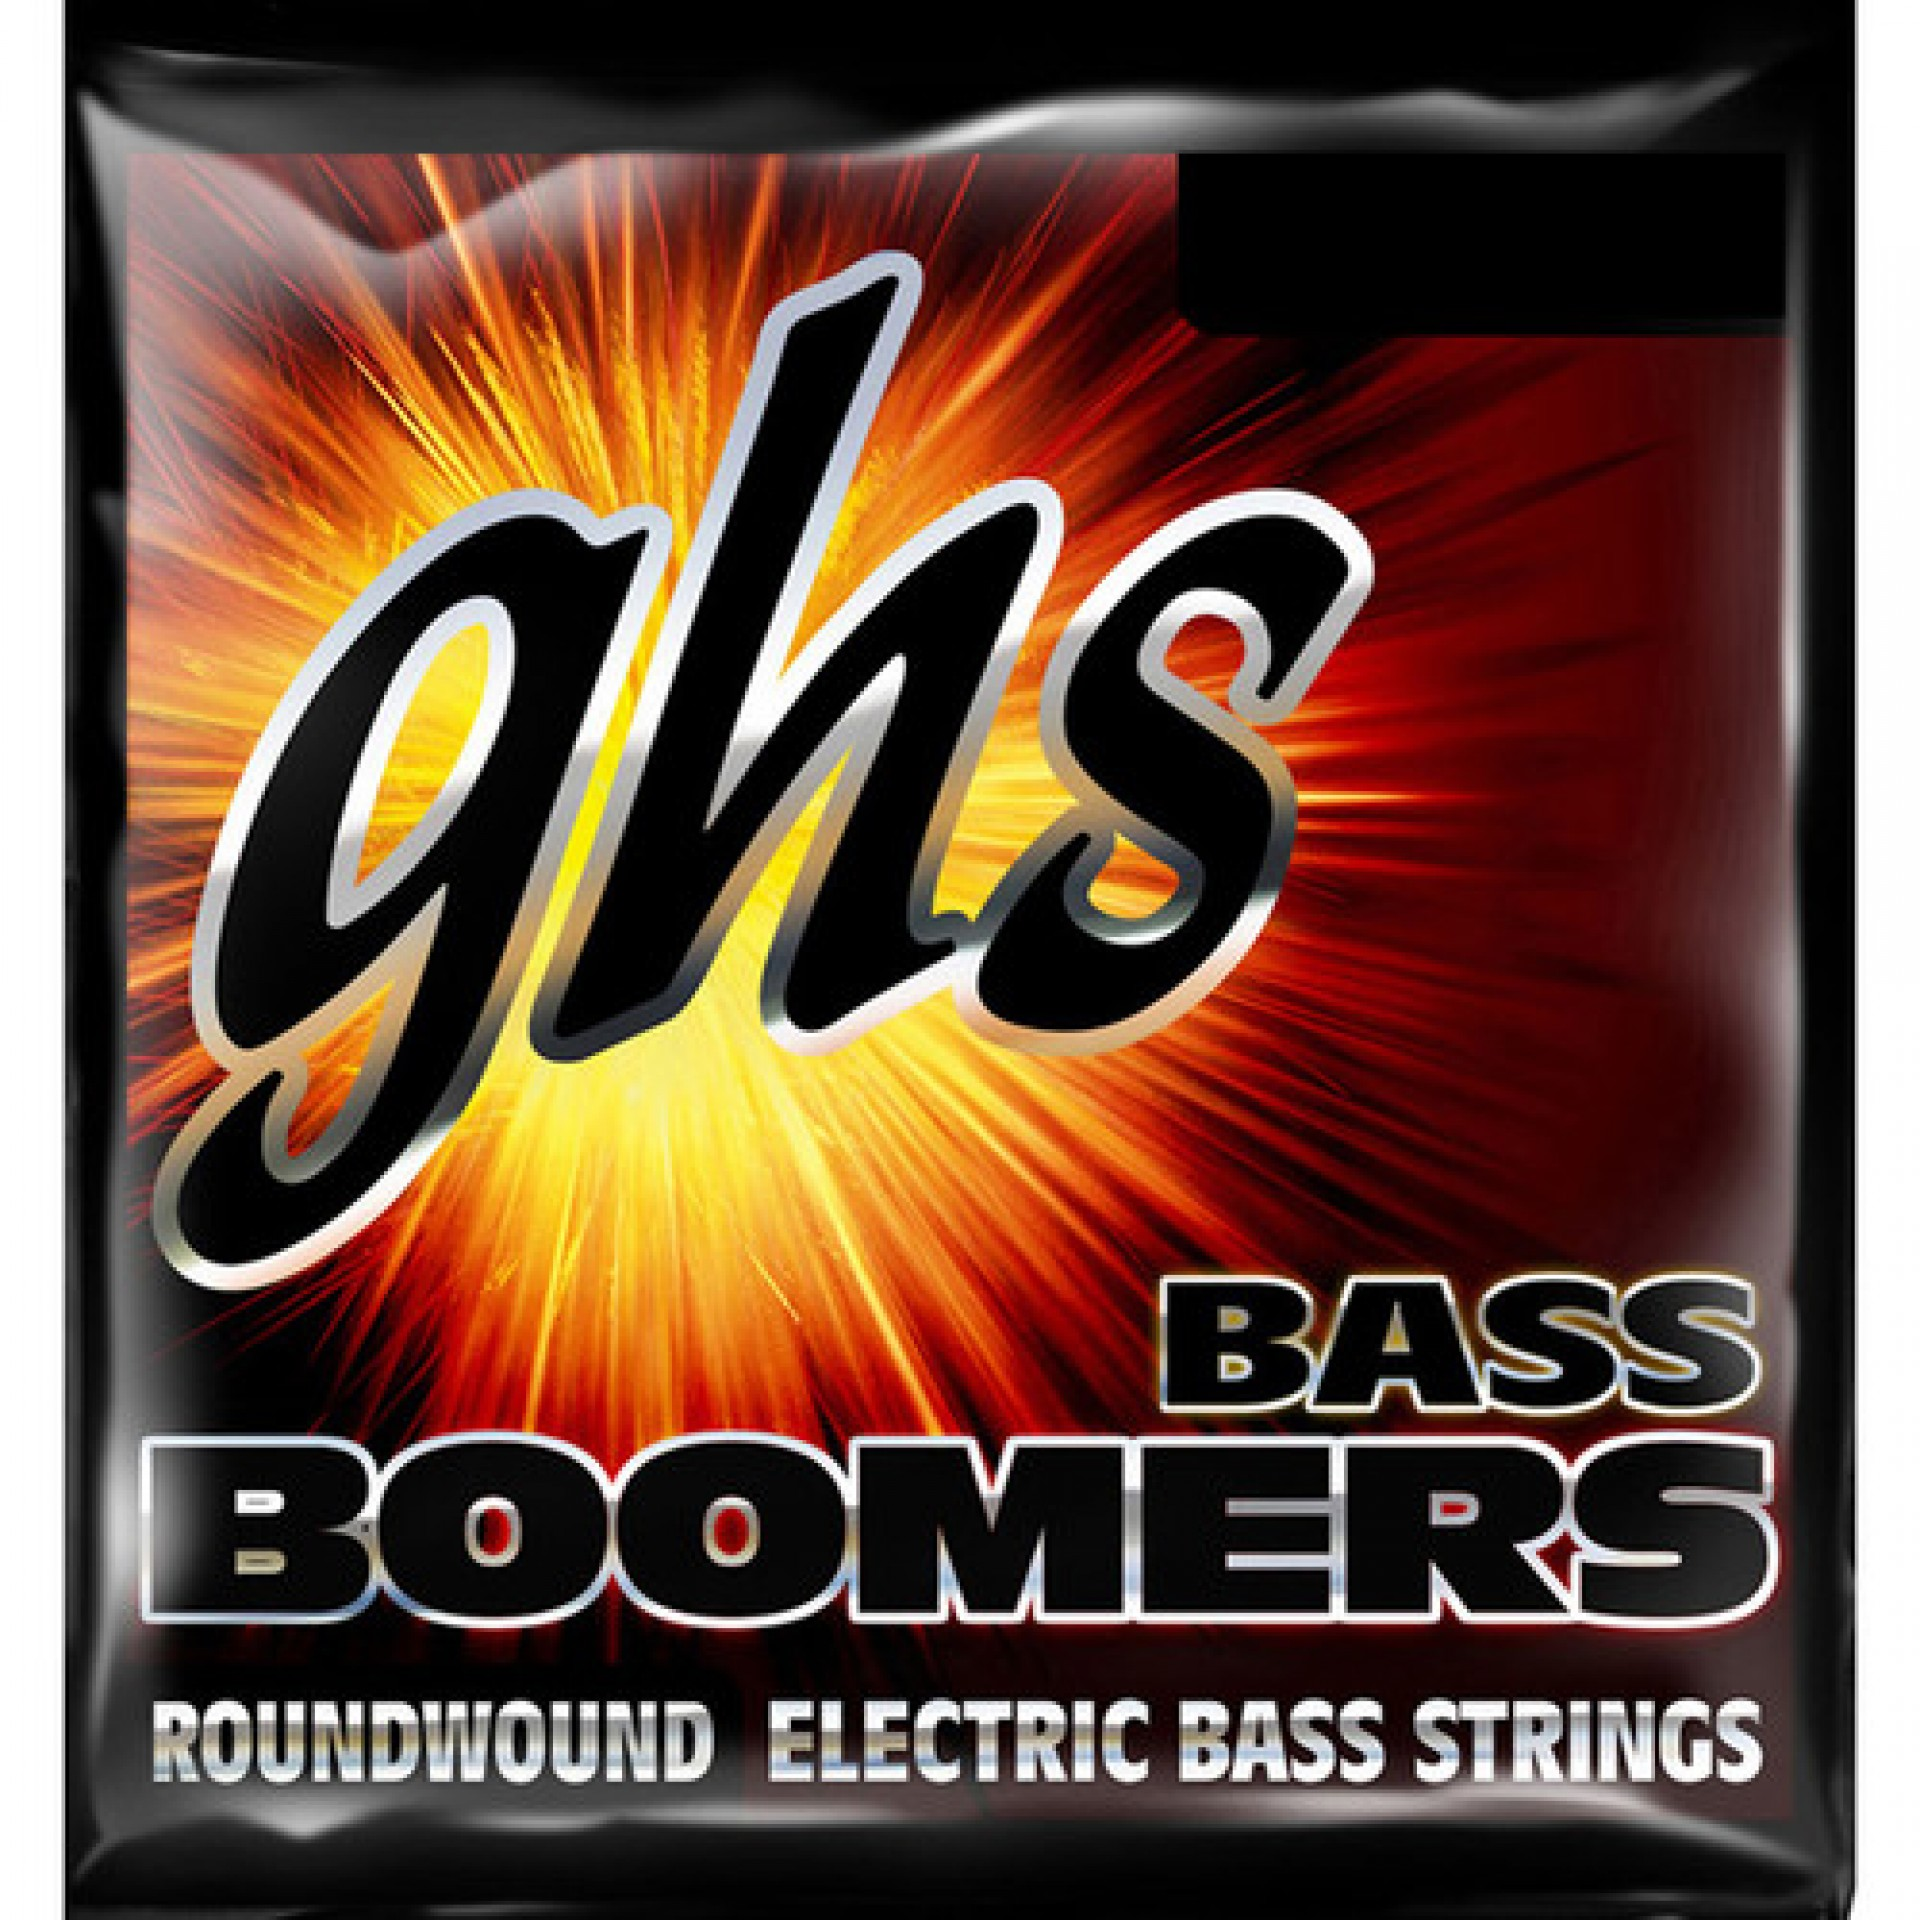 GHS 3035 Regular Bass Boomers Roundwound Electric Bass Strings (4-String Set, Short Scale, 50 - 107)